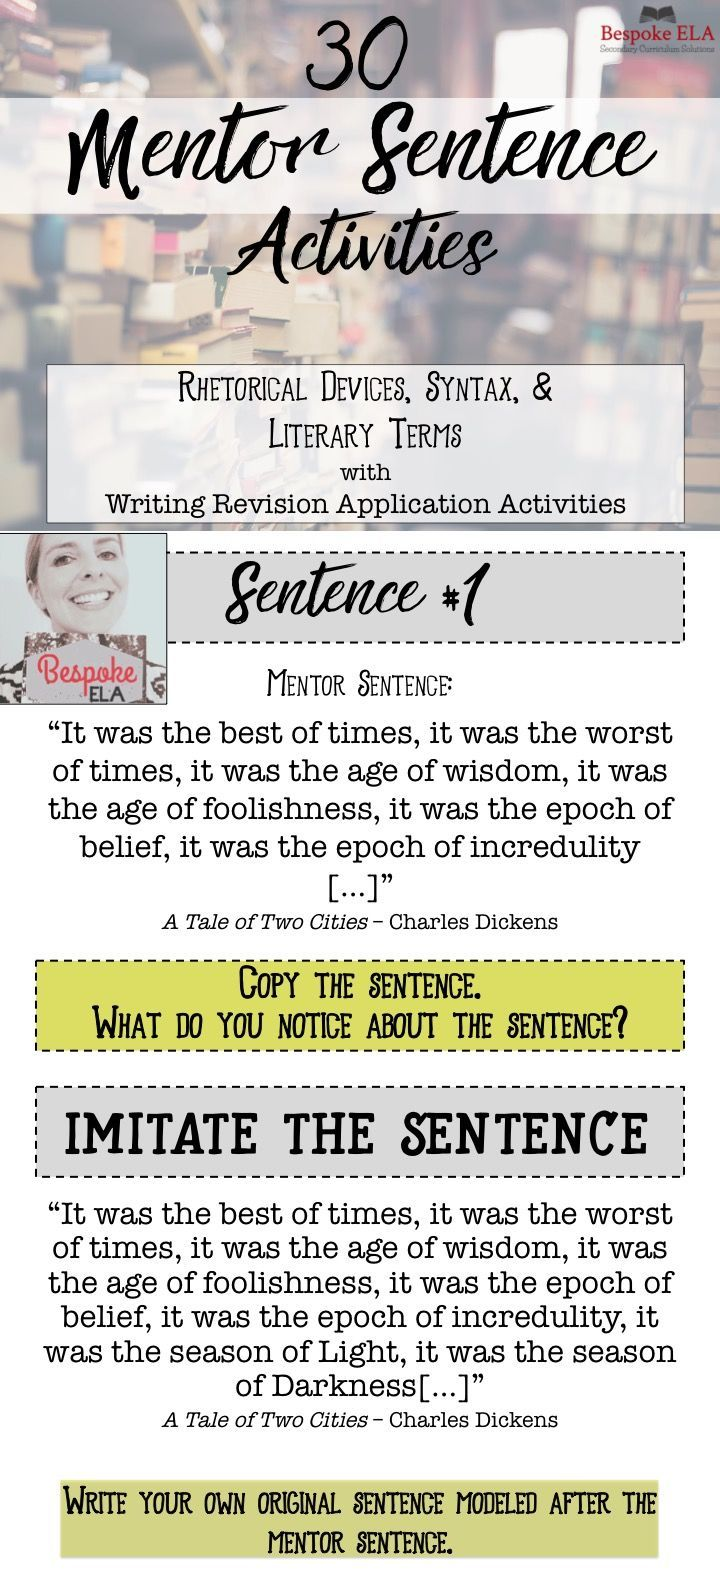 This product is a POWER POINT that contains 30 MENTOR SENTENCES from famous classic writers to model key literary terms, rhetorical devices, and syntactical structures for students.  Excellent for high school English Language Arts including Advanced Placement.   by Bespoke ELA